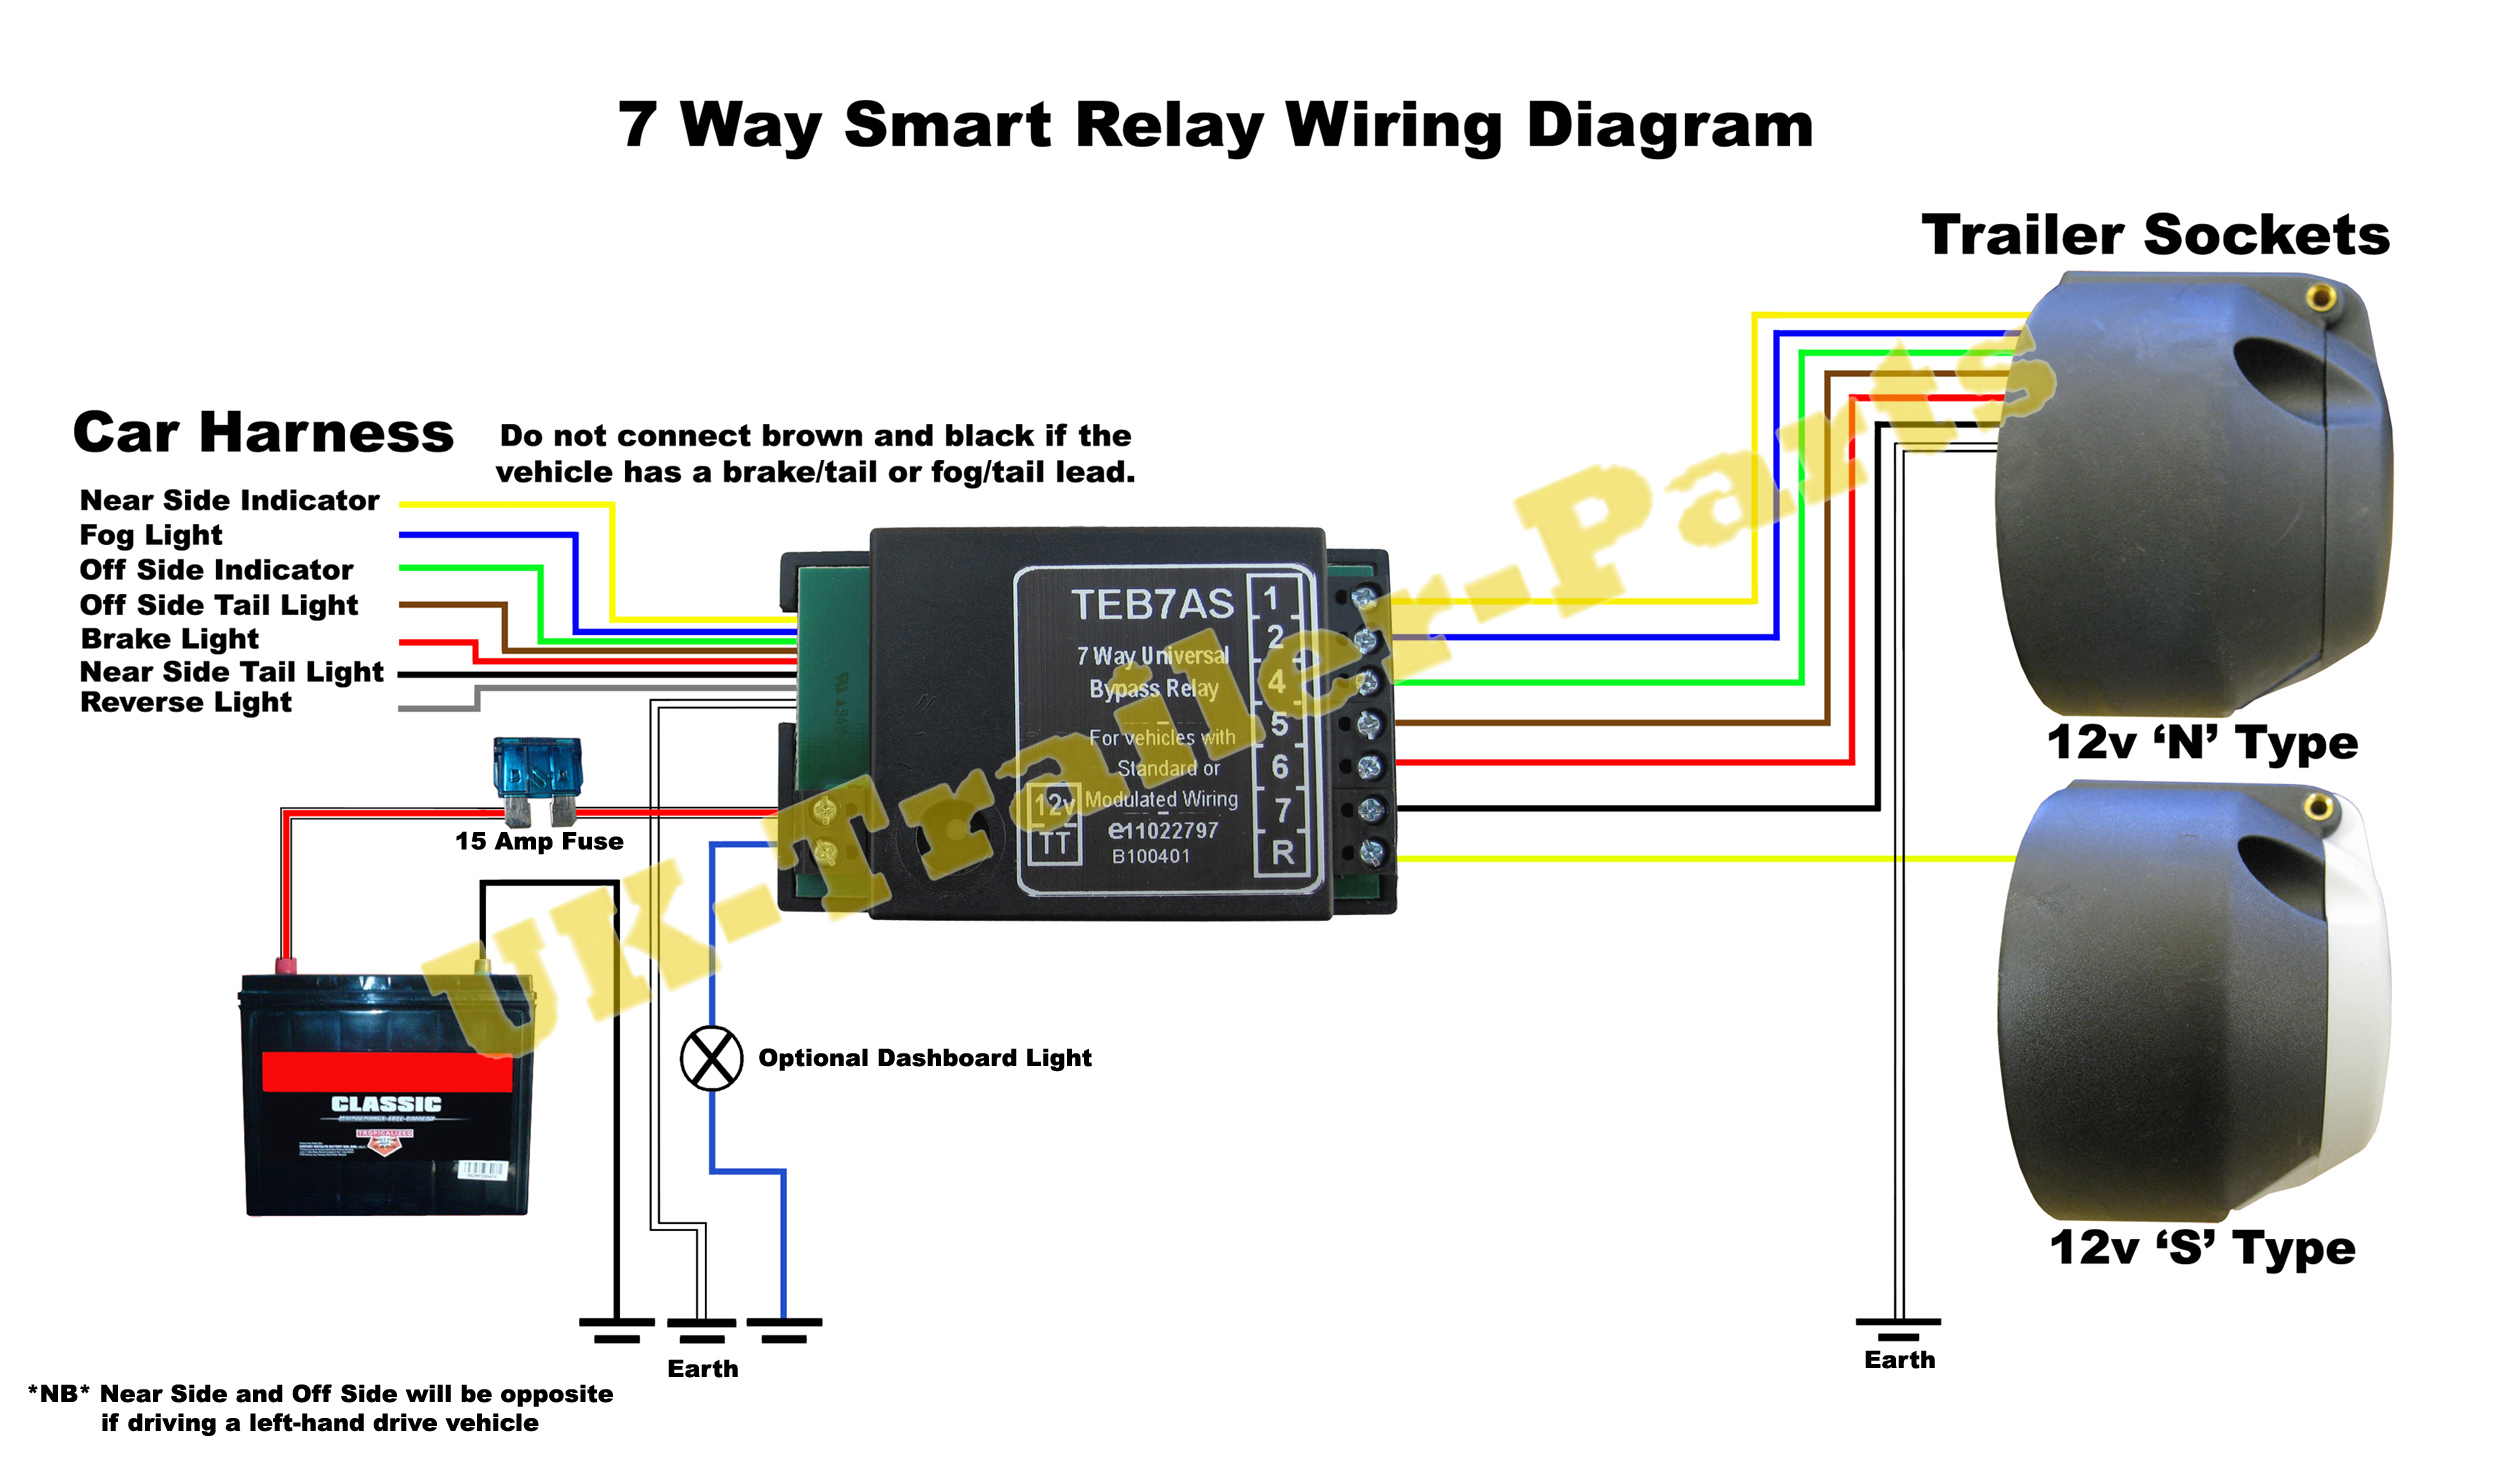 smart relay wiring diagram2 7 way universal bypass relay wiring diagram uk trailer parts ford s max towbar wiring diagram at soozxer.org